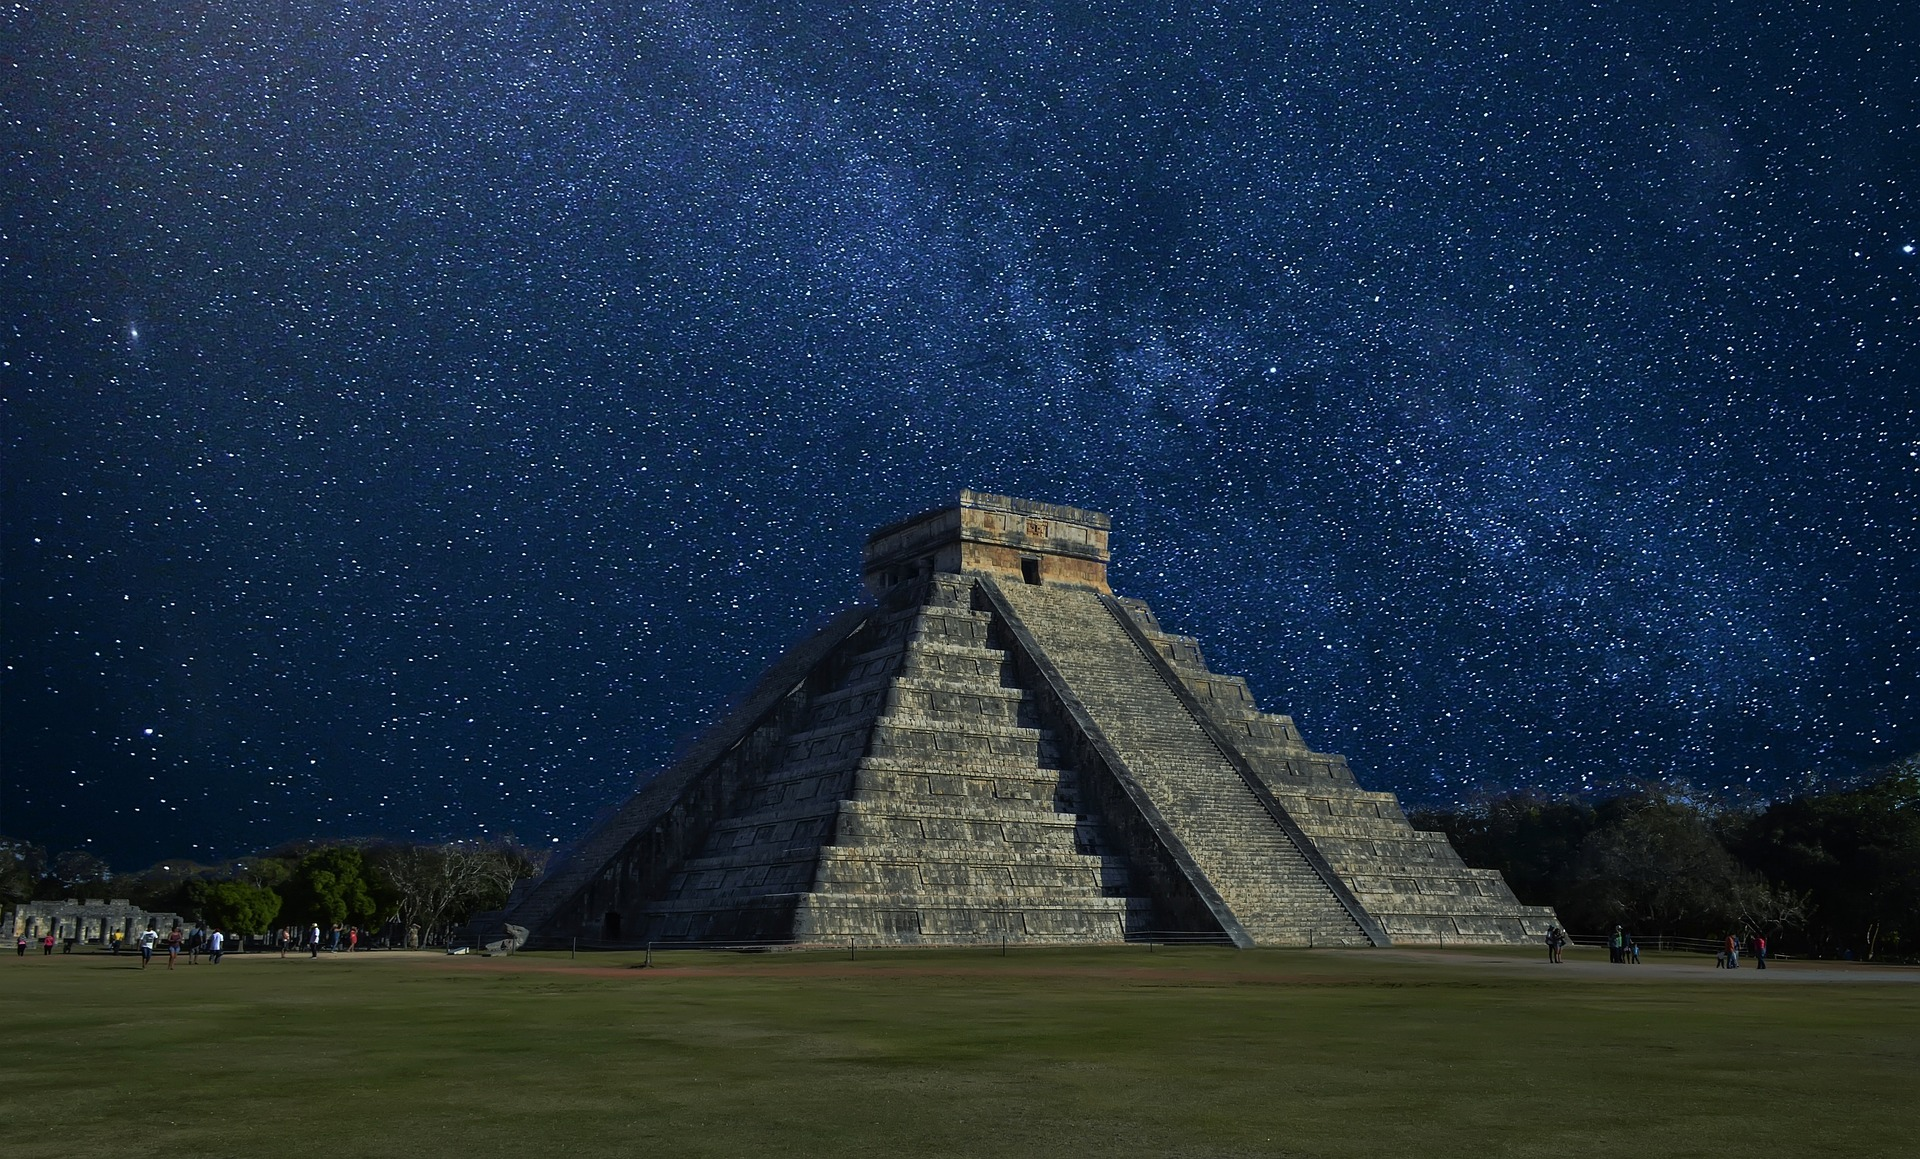 Image of Chichen Itza